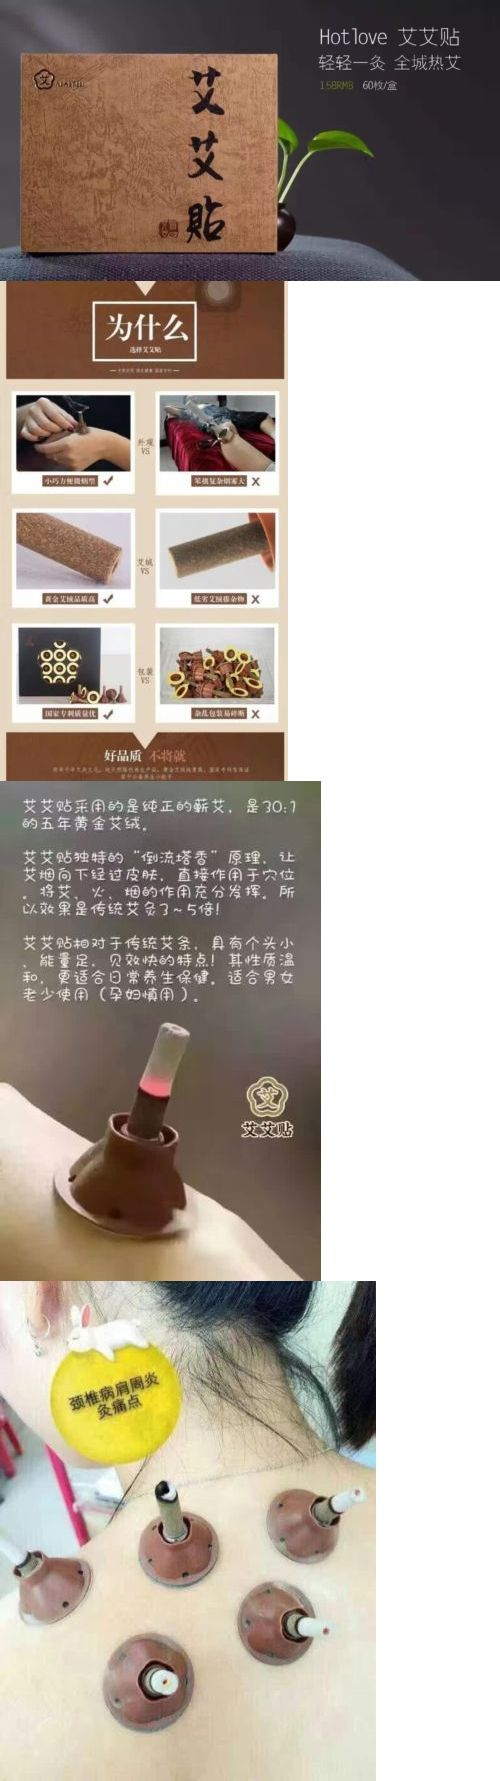 Acupuncture: Moxa Meridian Moxibustion Moxa Stick Acupuncture Body Micro-Smoke Tube 60Pcs BUY IT NOW ONLY: $34.99